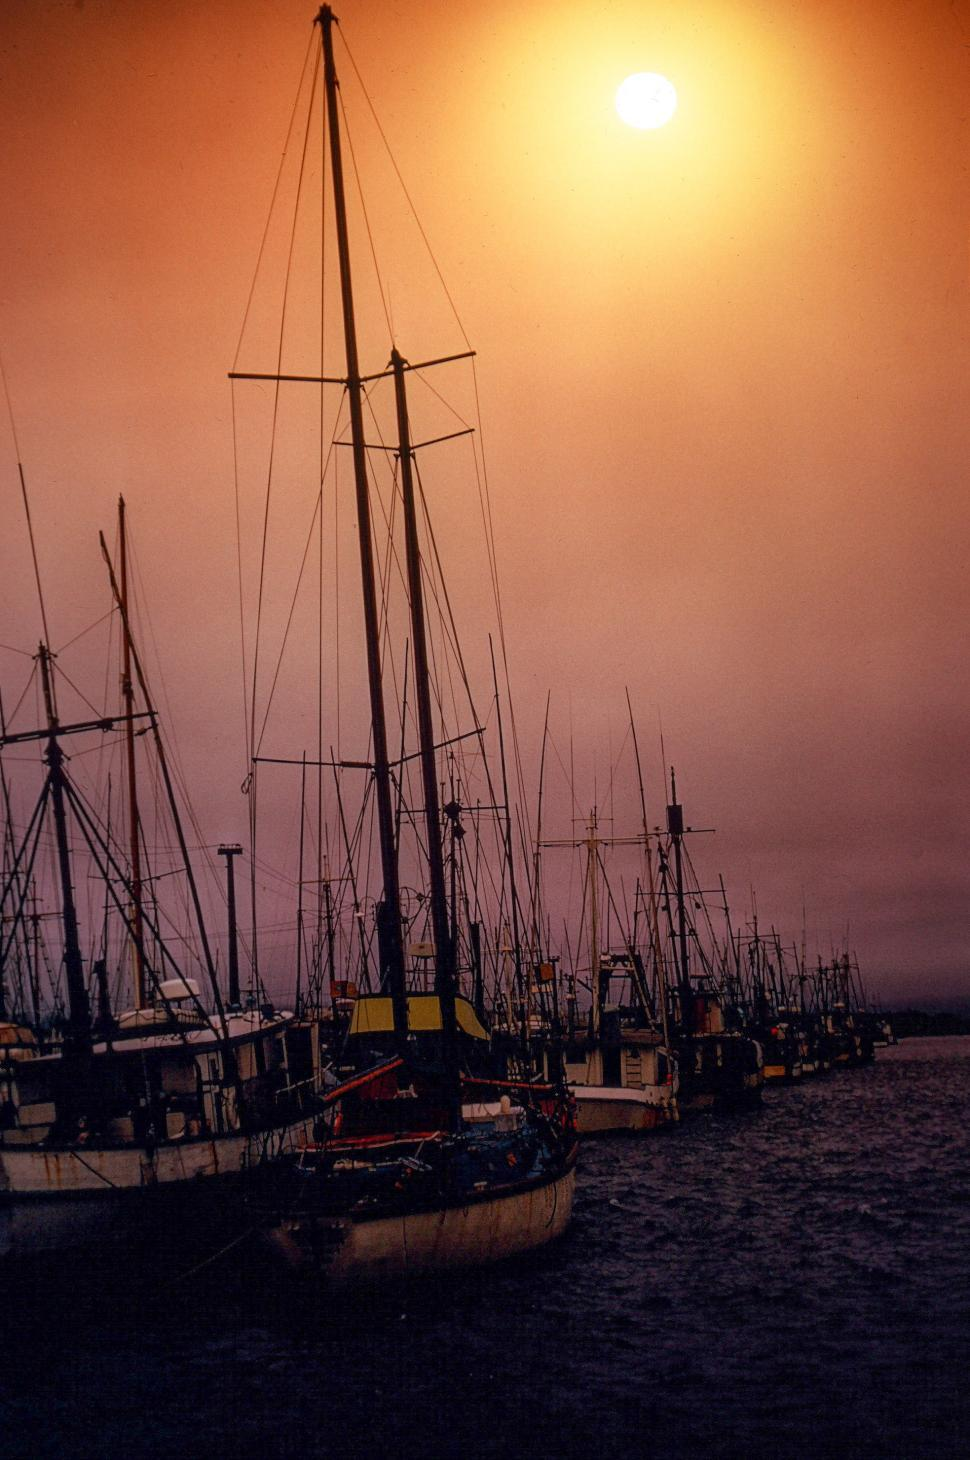 Download Free Stock HD Photo of Commercial fishing boats Online